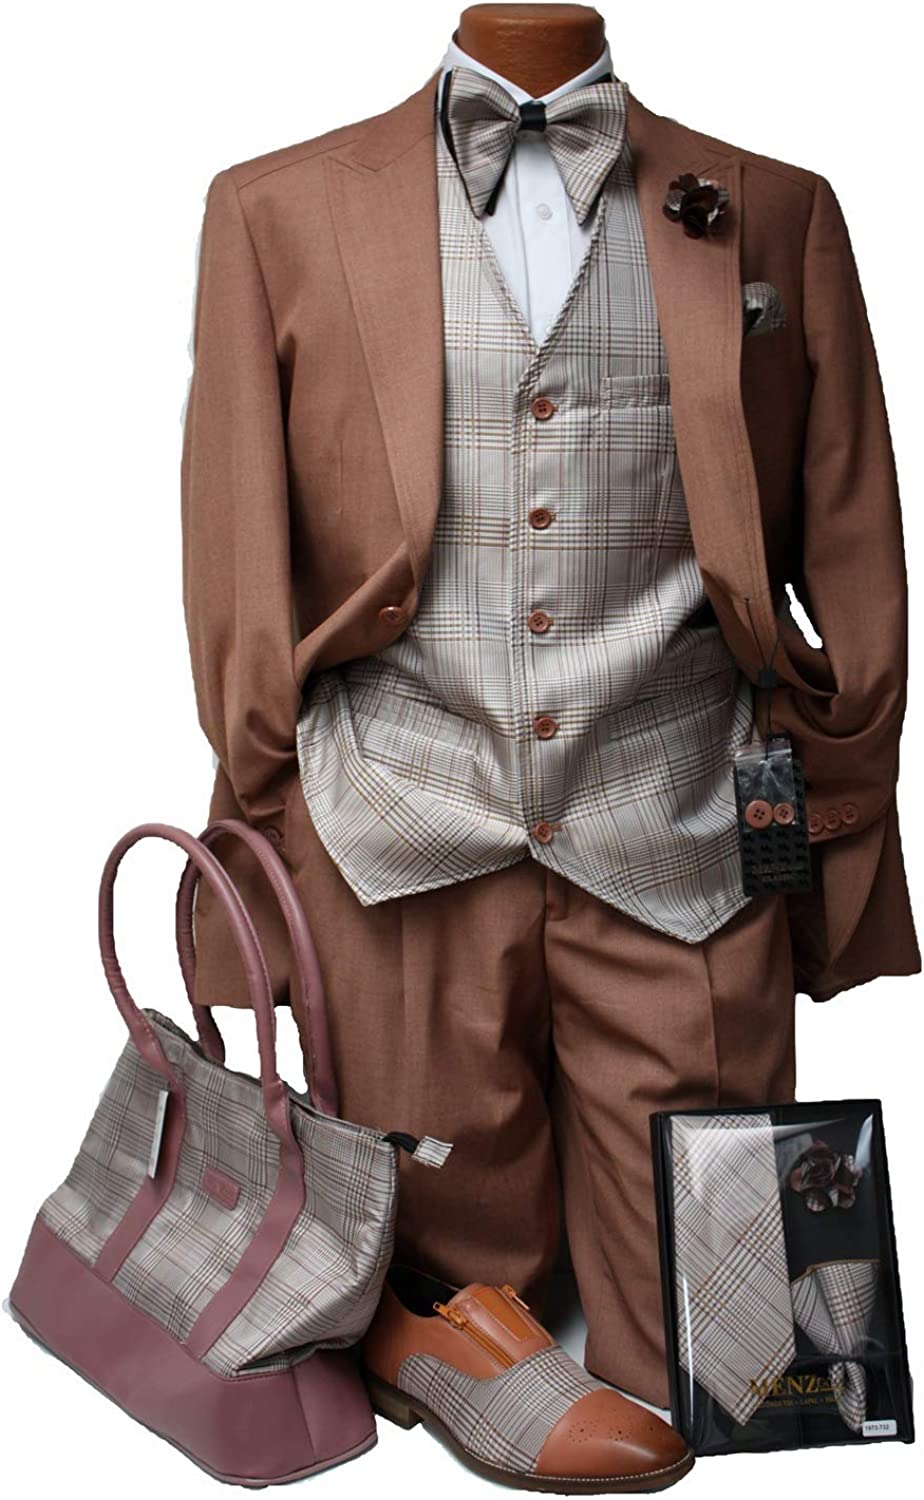 Men 3 pc Suit with Plaid Vest and Free Matching Tie or Bow Tie with Lapel Pin (54L, Brick Cognac)